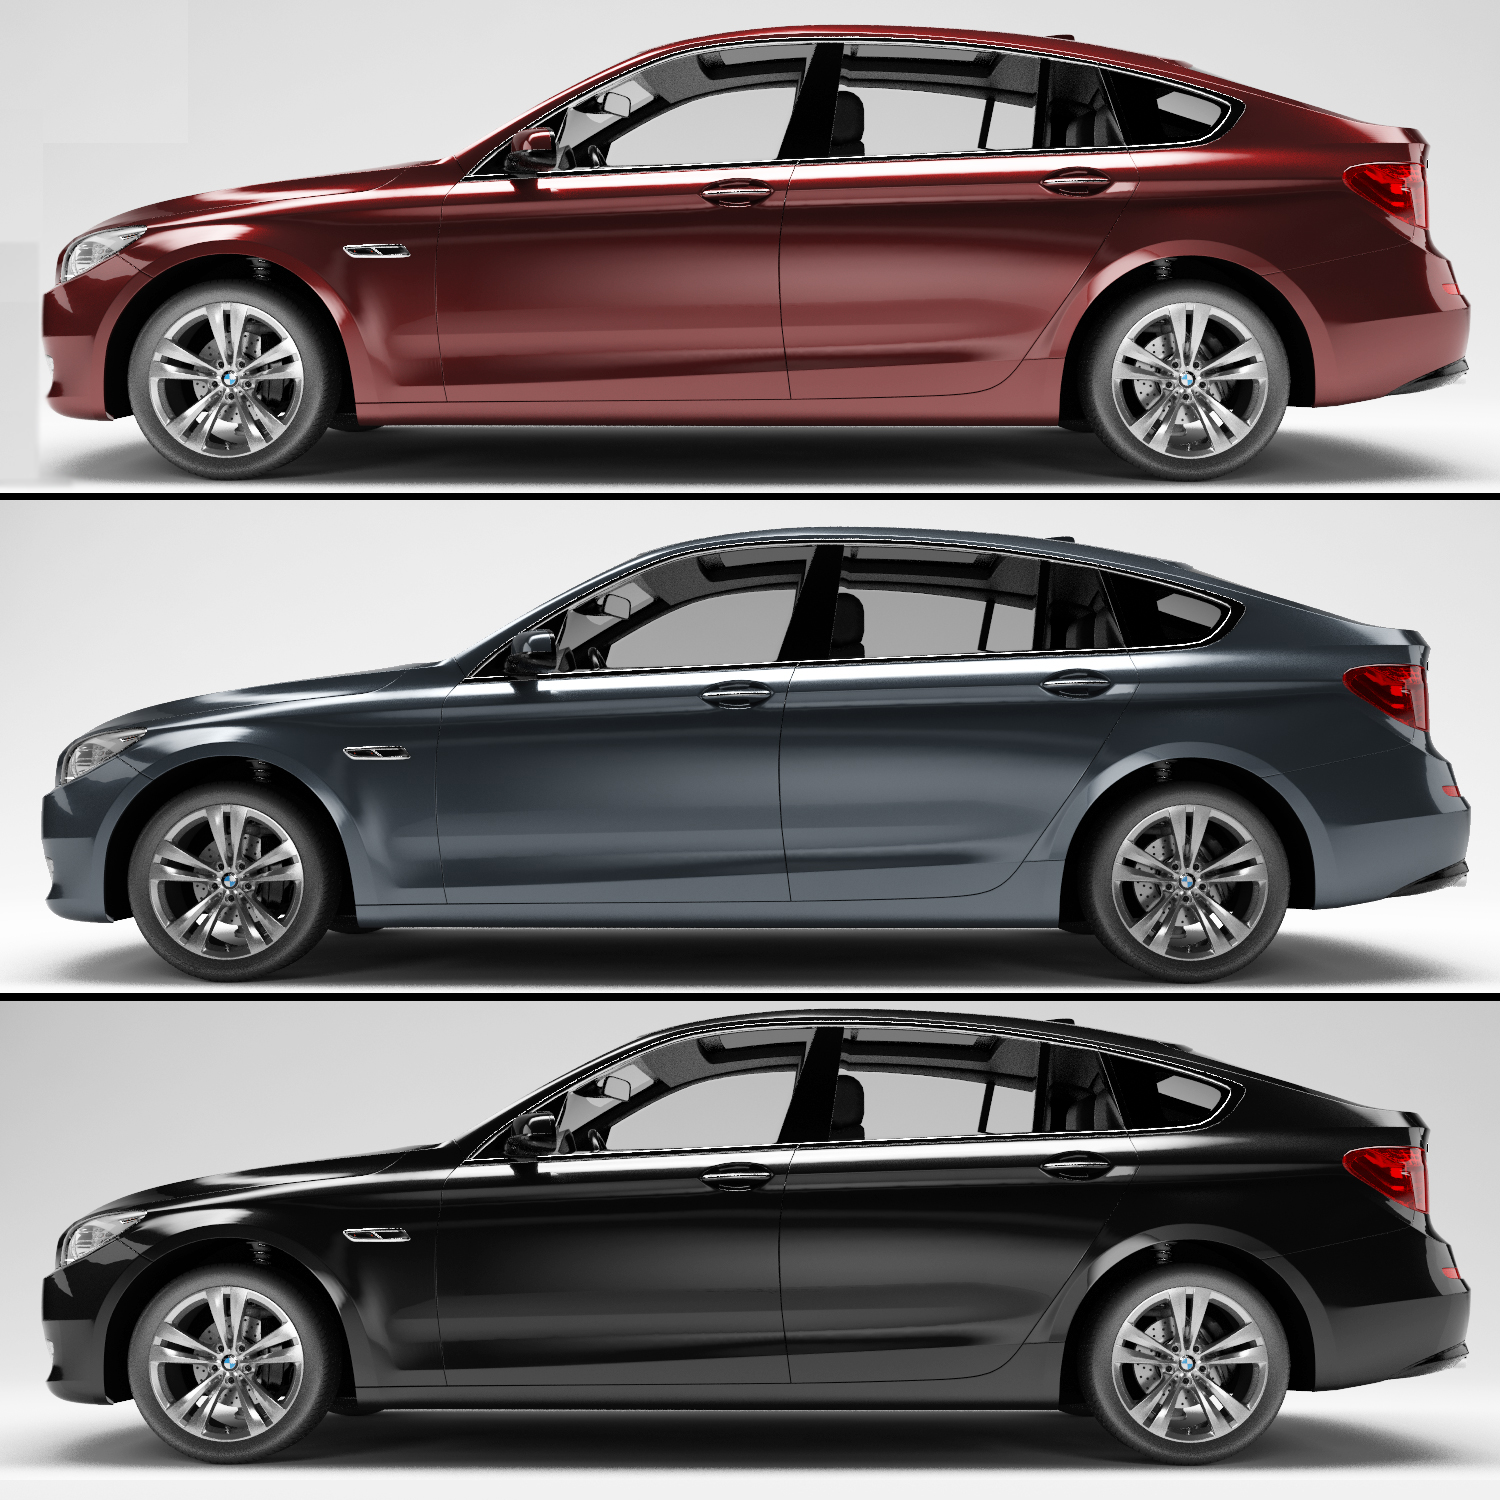 4 Series Vs 6 Series Concept: BMW 5 Series (6 Colors) By ContinentCGS